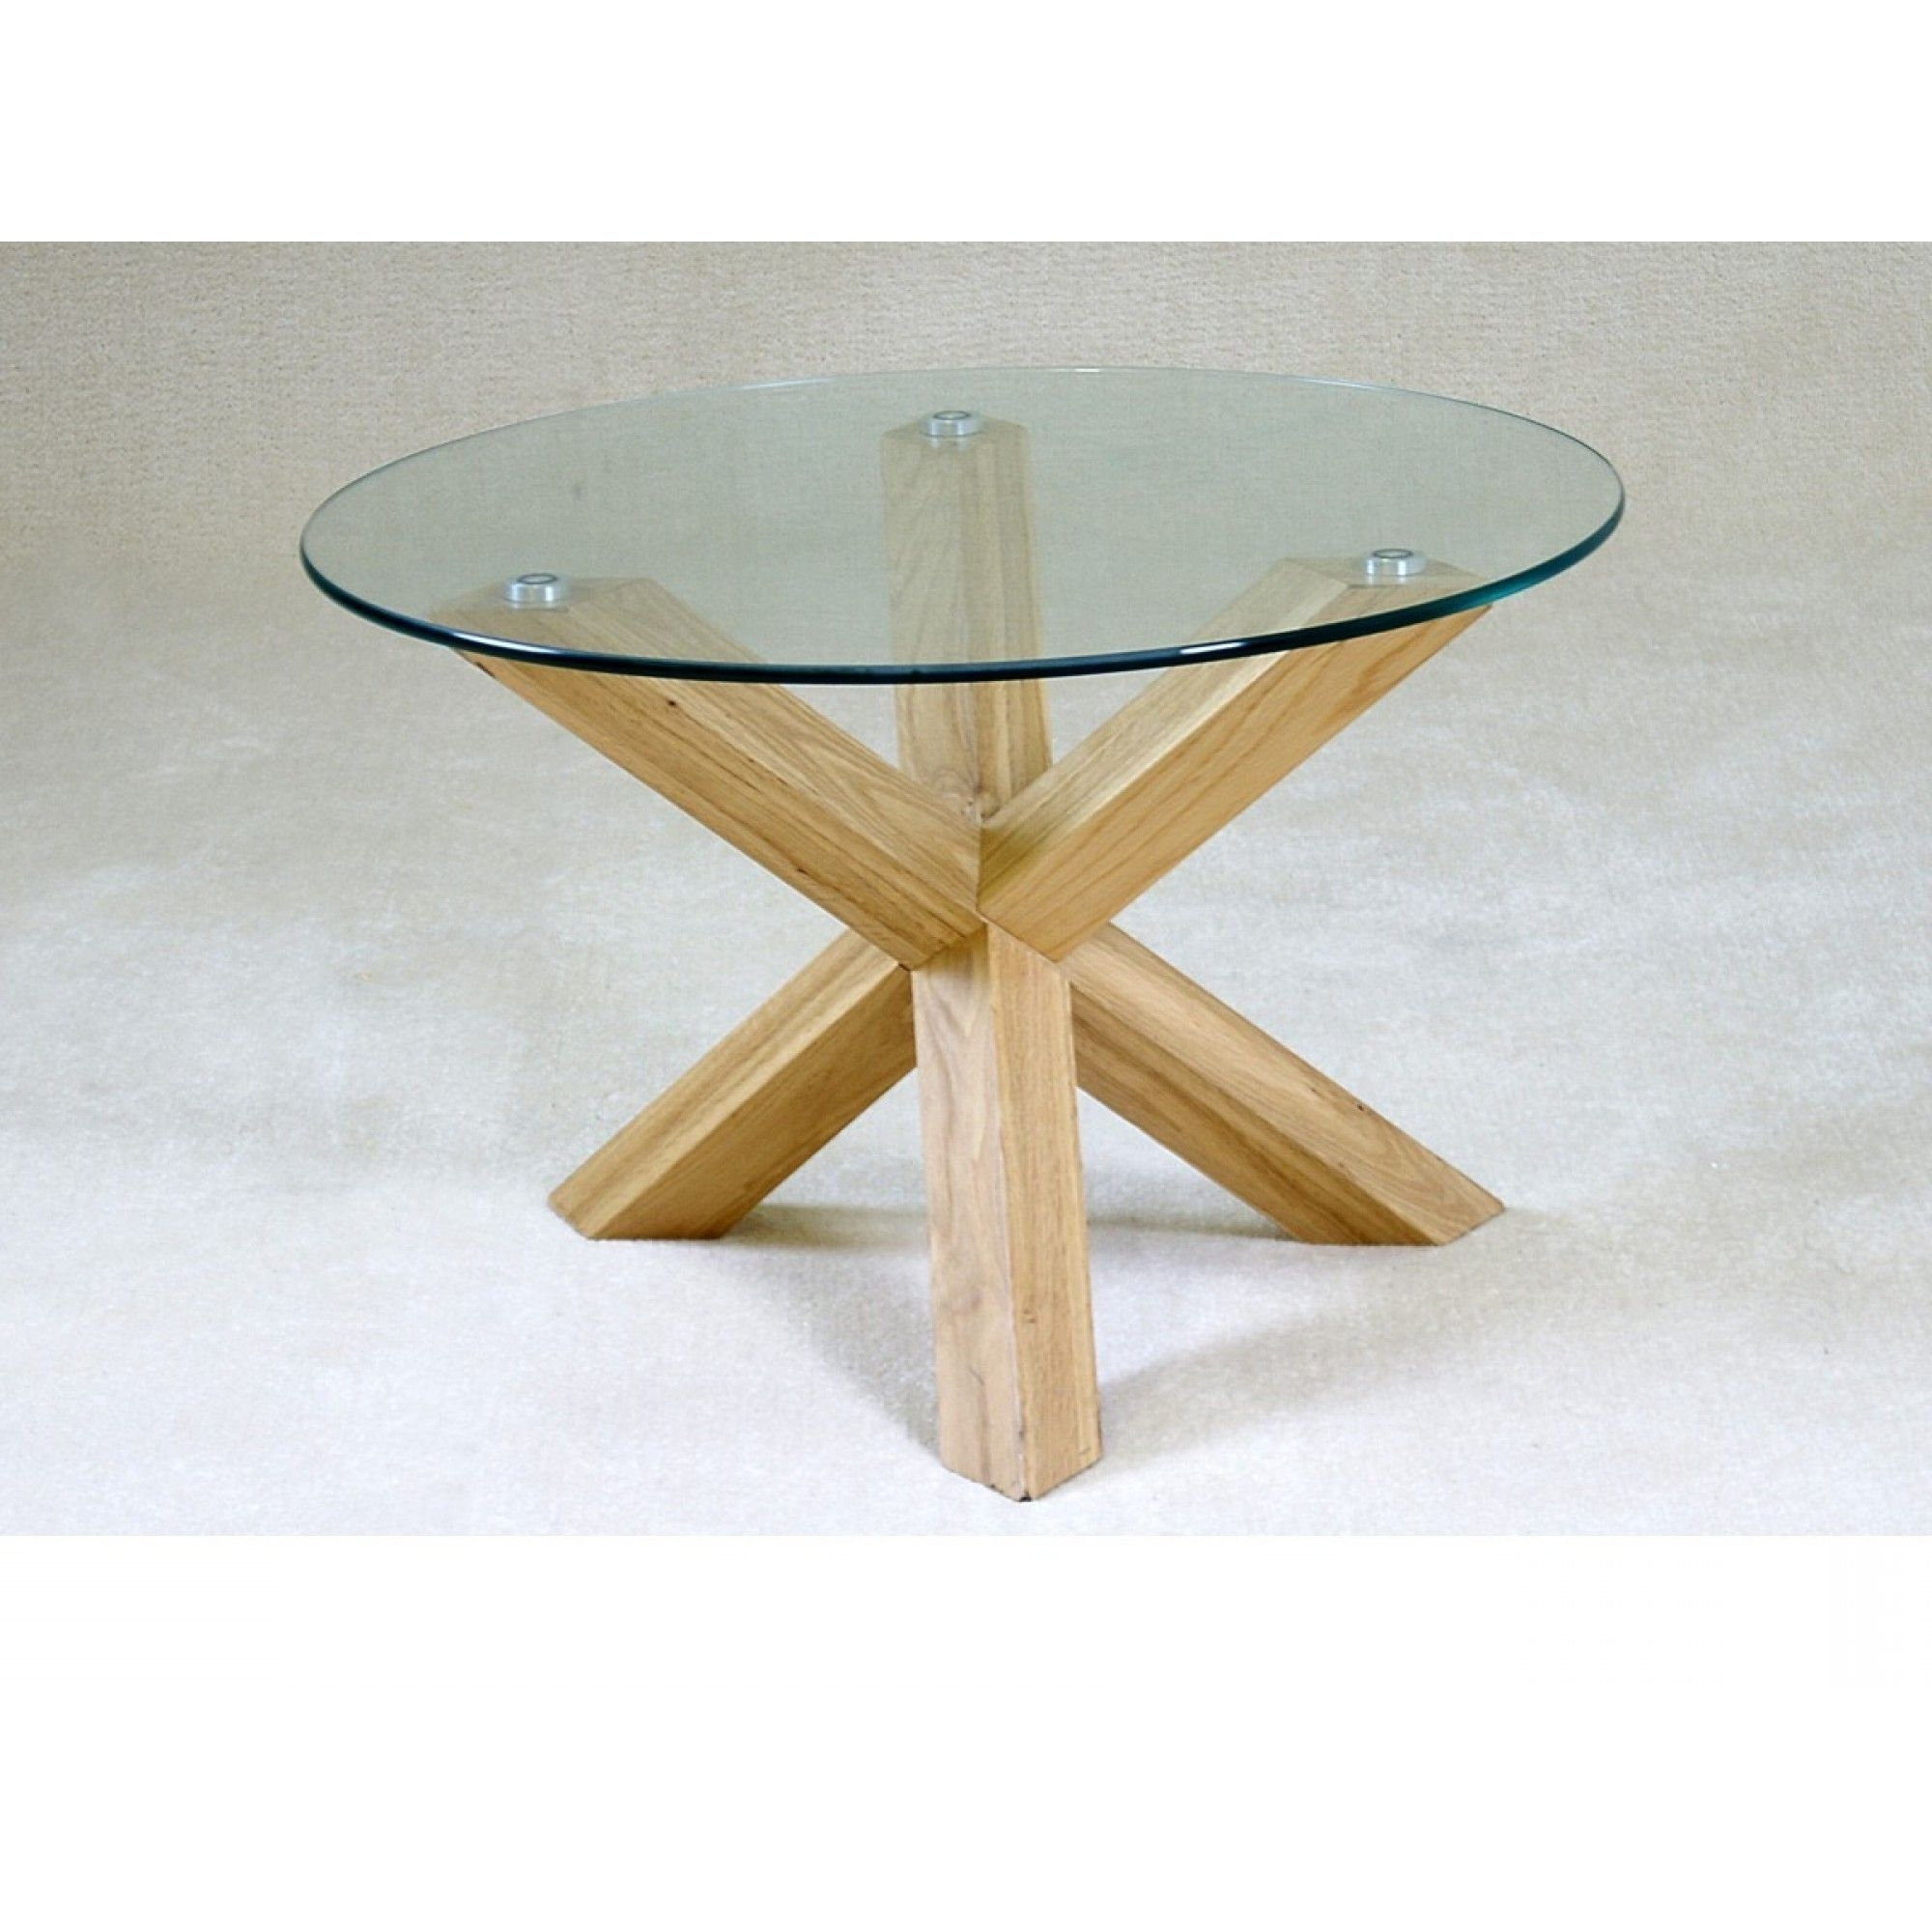 Round Glass Dining Tables With Oak Legs Pertaining To Well Liked Glass Coffee Table Oak Legs (View 19 of 25)